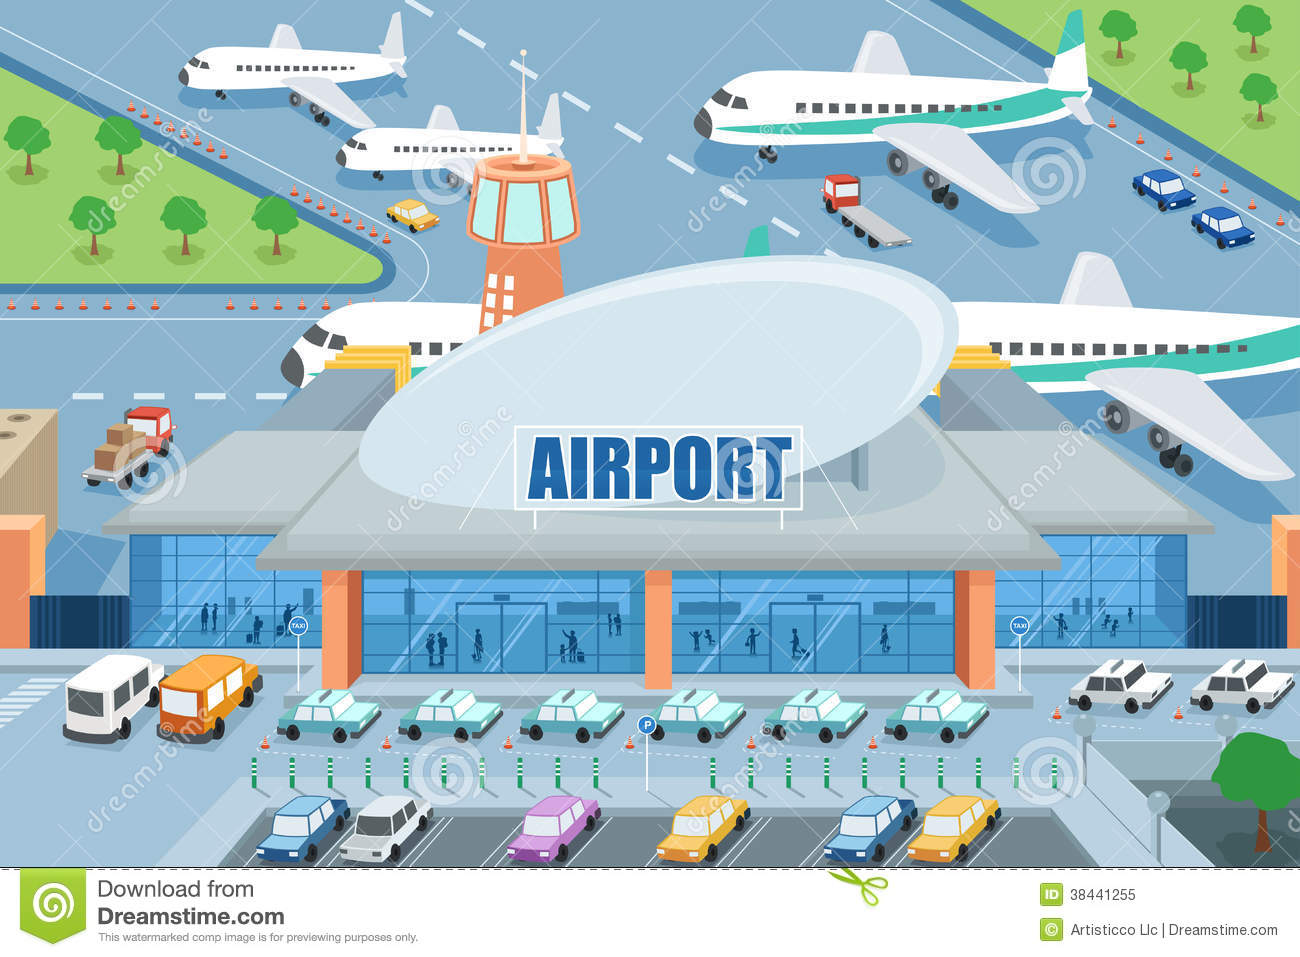 airport gate clipart - photo #37